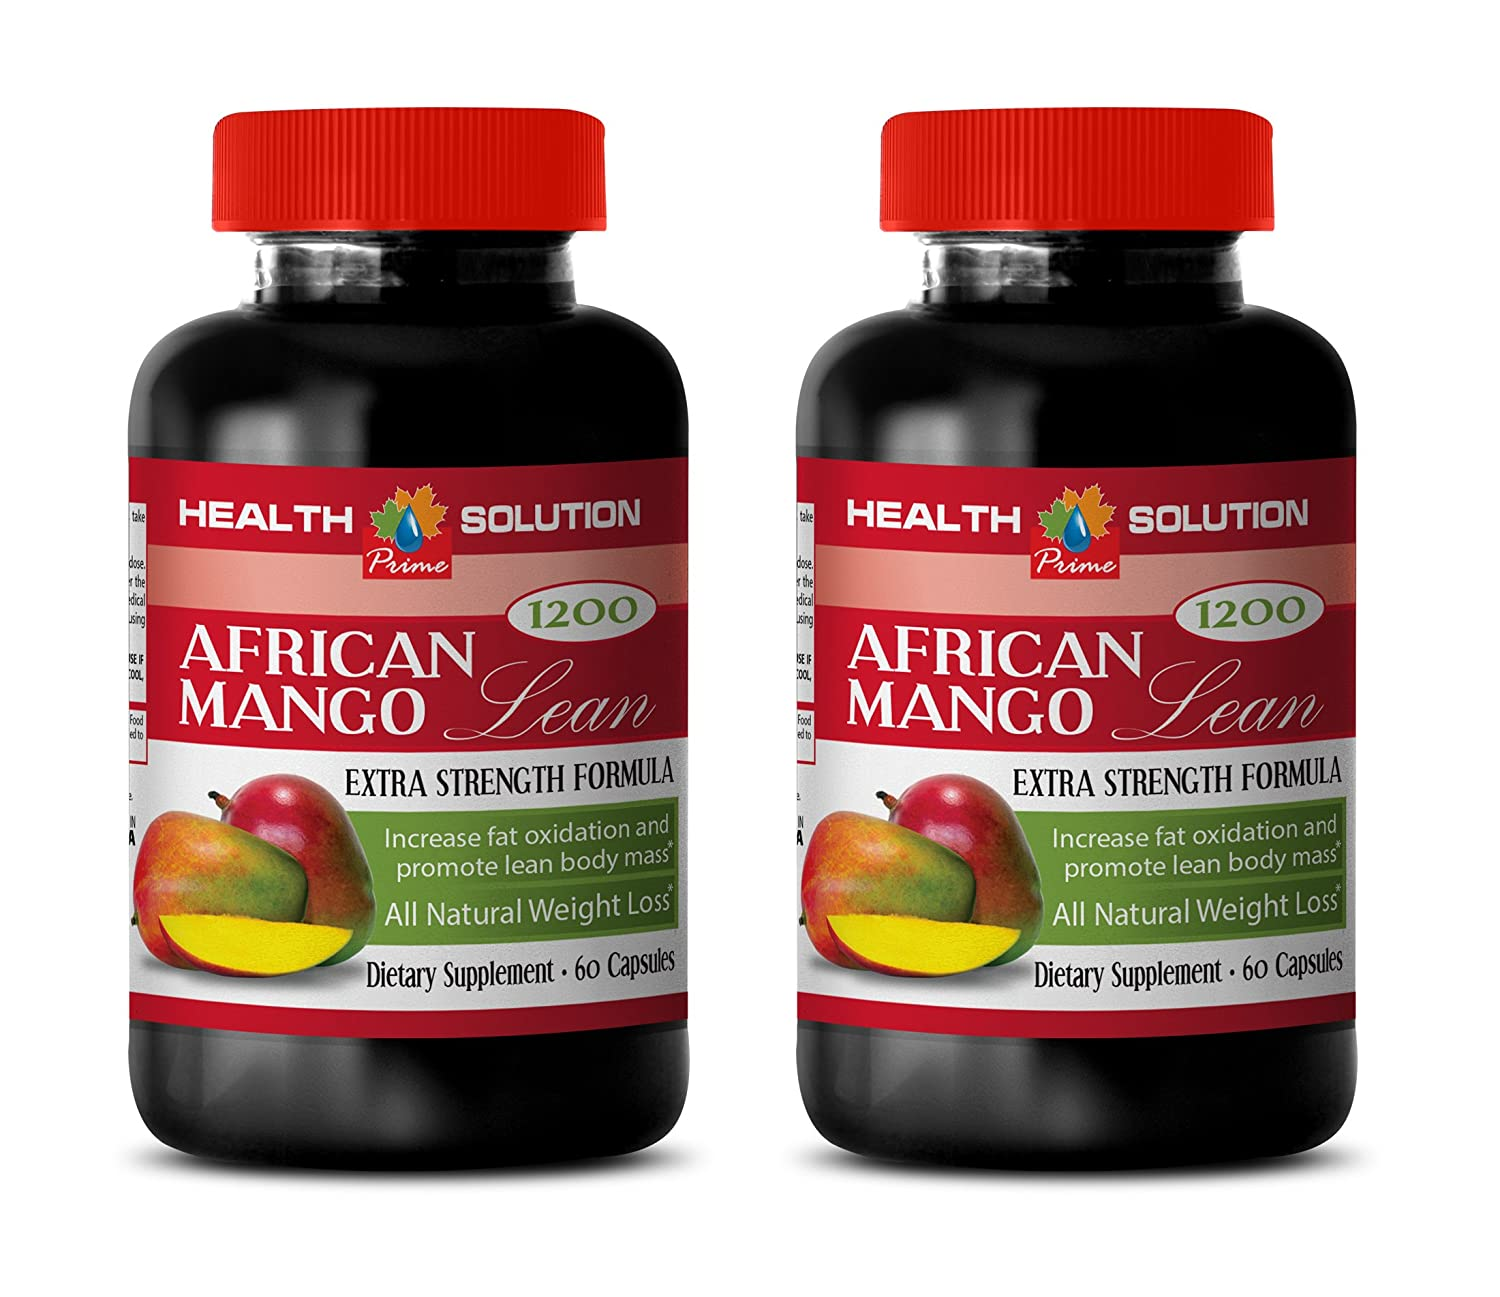 Organic african mango diet pills – AFRICAN MANGO LEAN Extra strength Formula 1200mg – Fat burner for weight loss women 2 Bottles 120 capsules